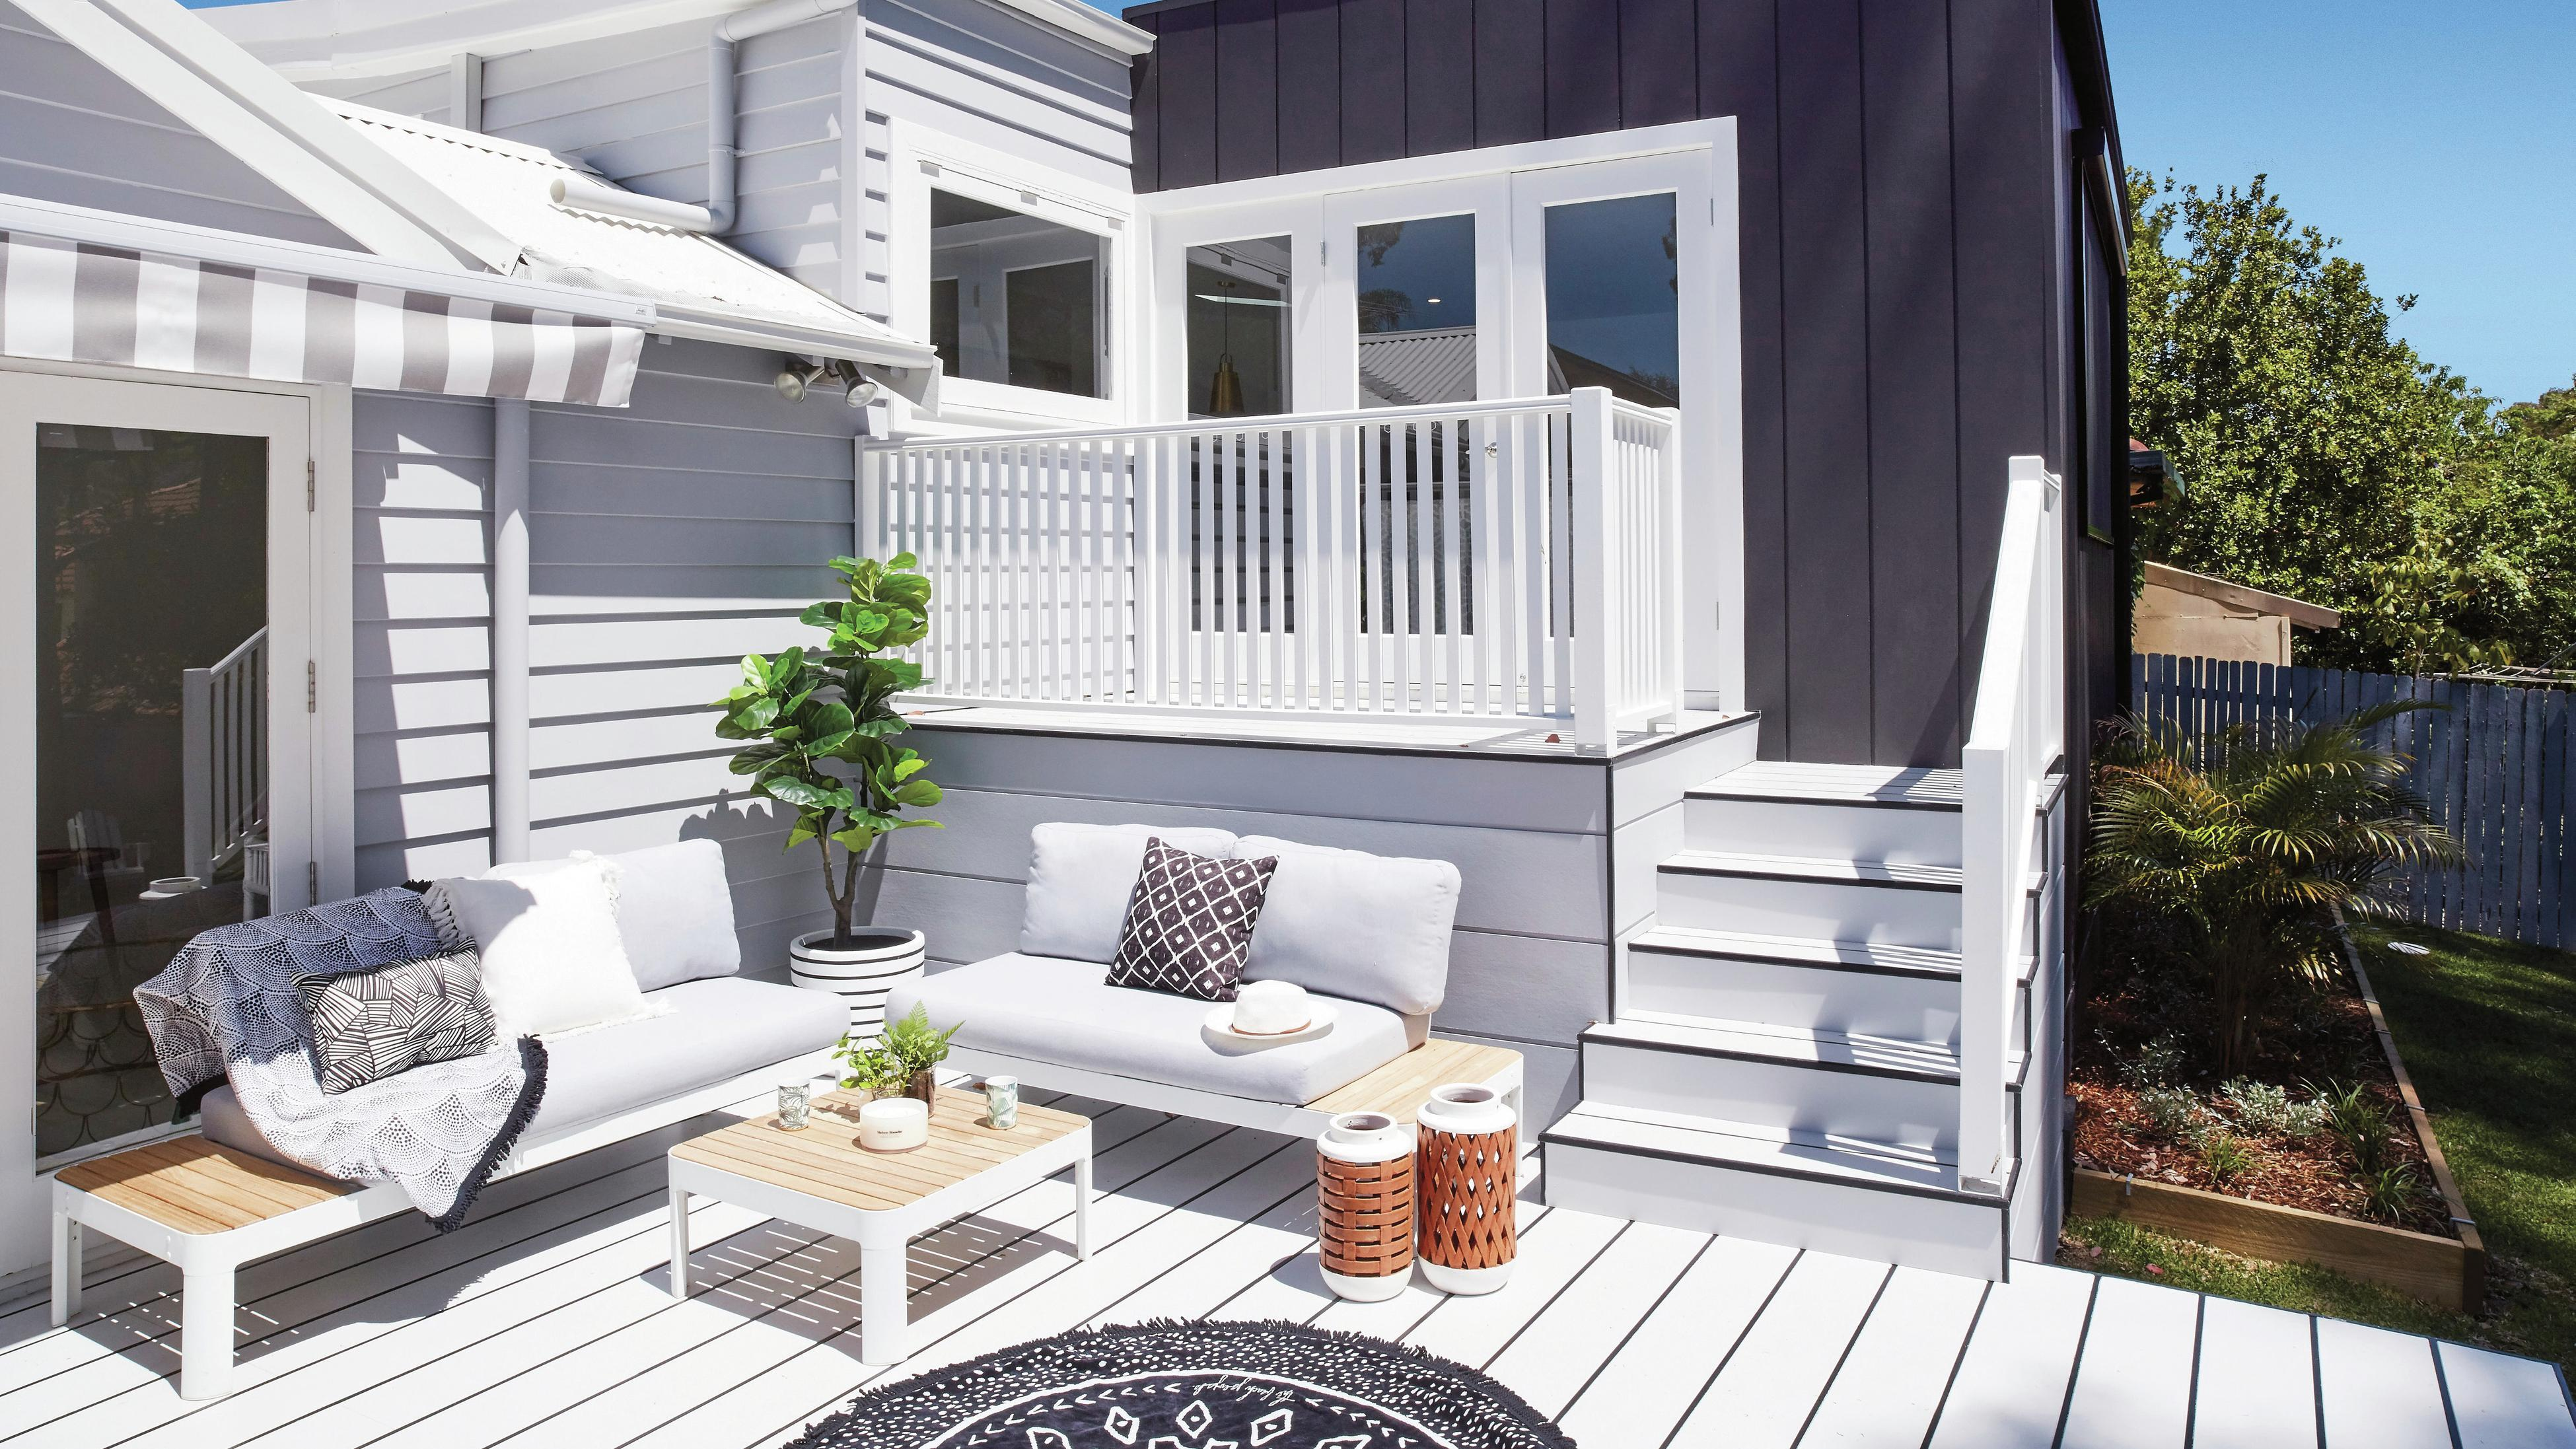 Outdoor area with white non-timber decking and coastal looking furniture.